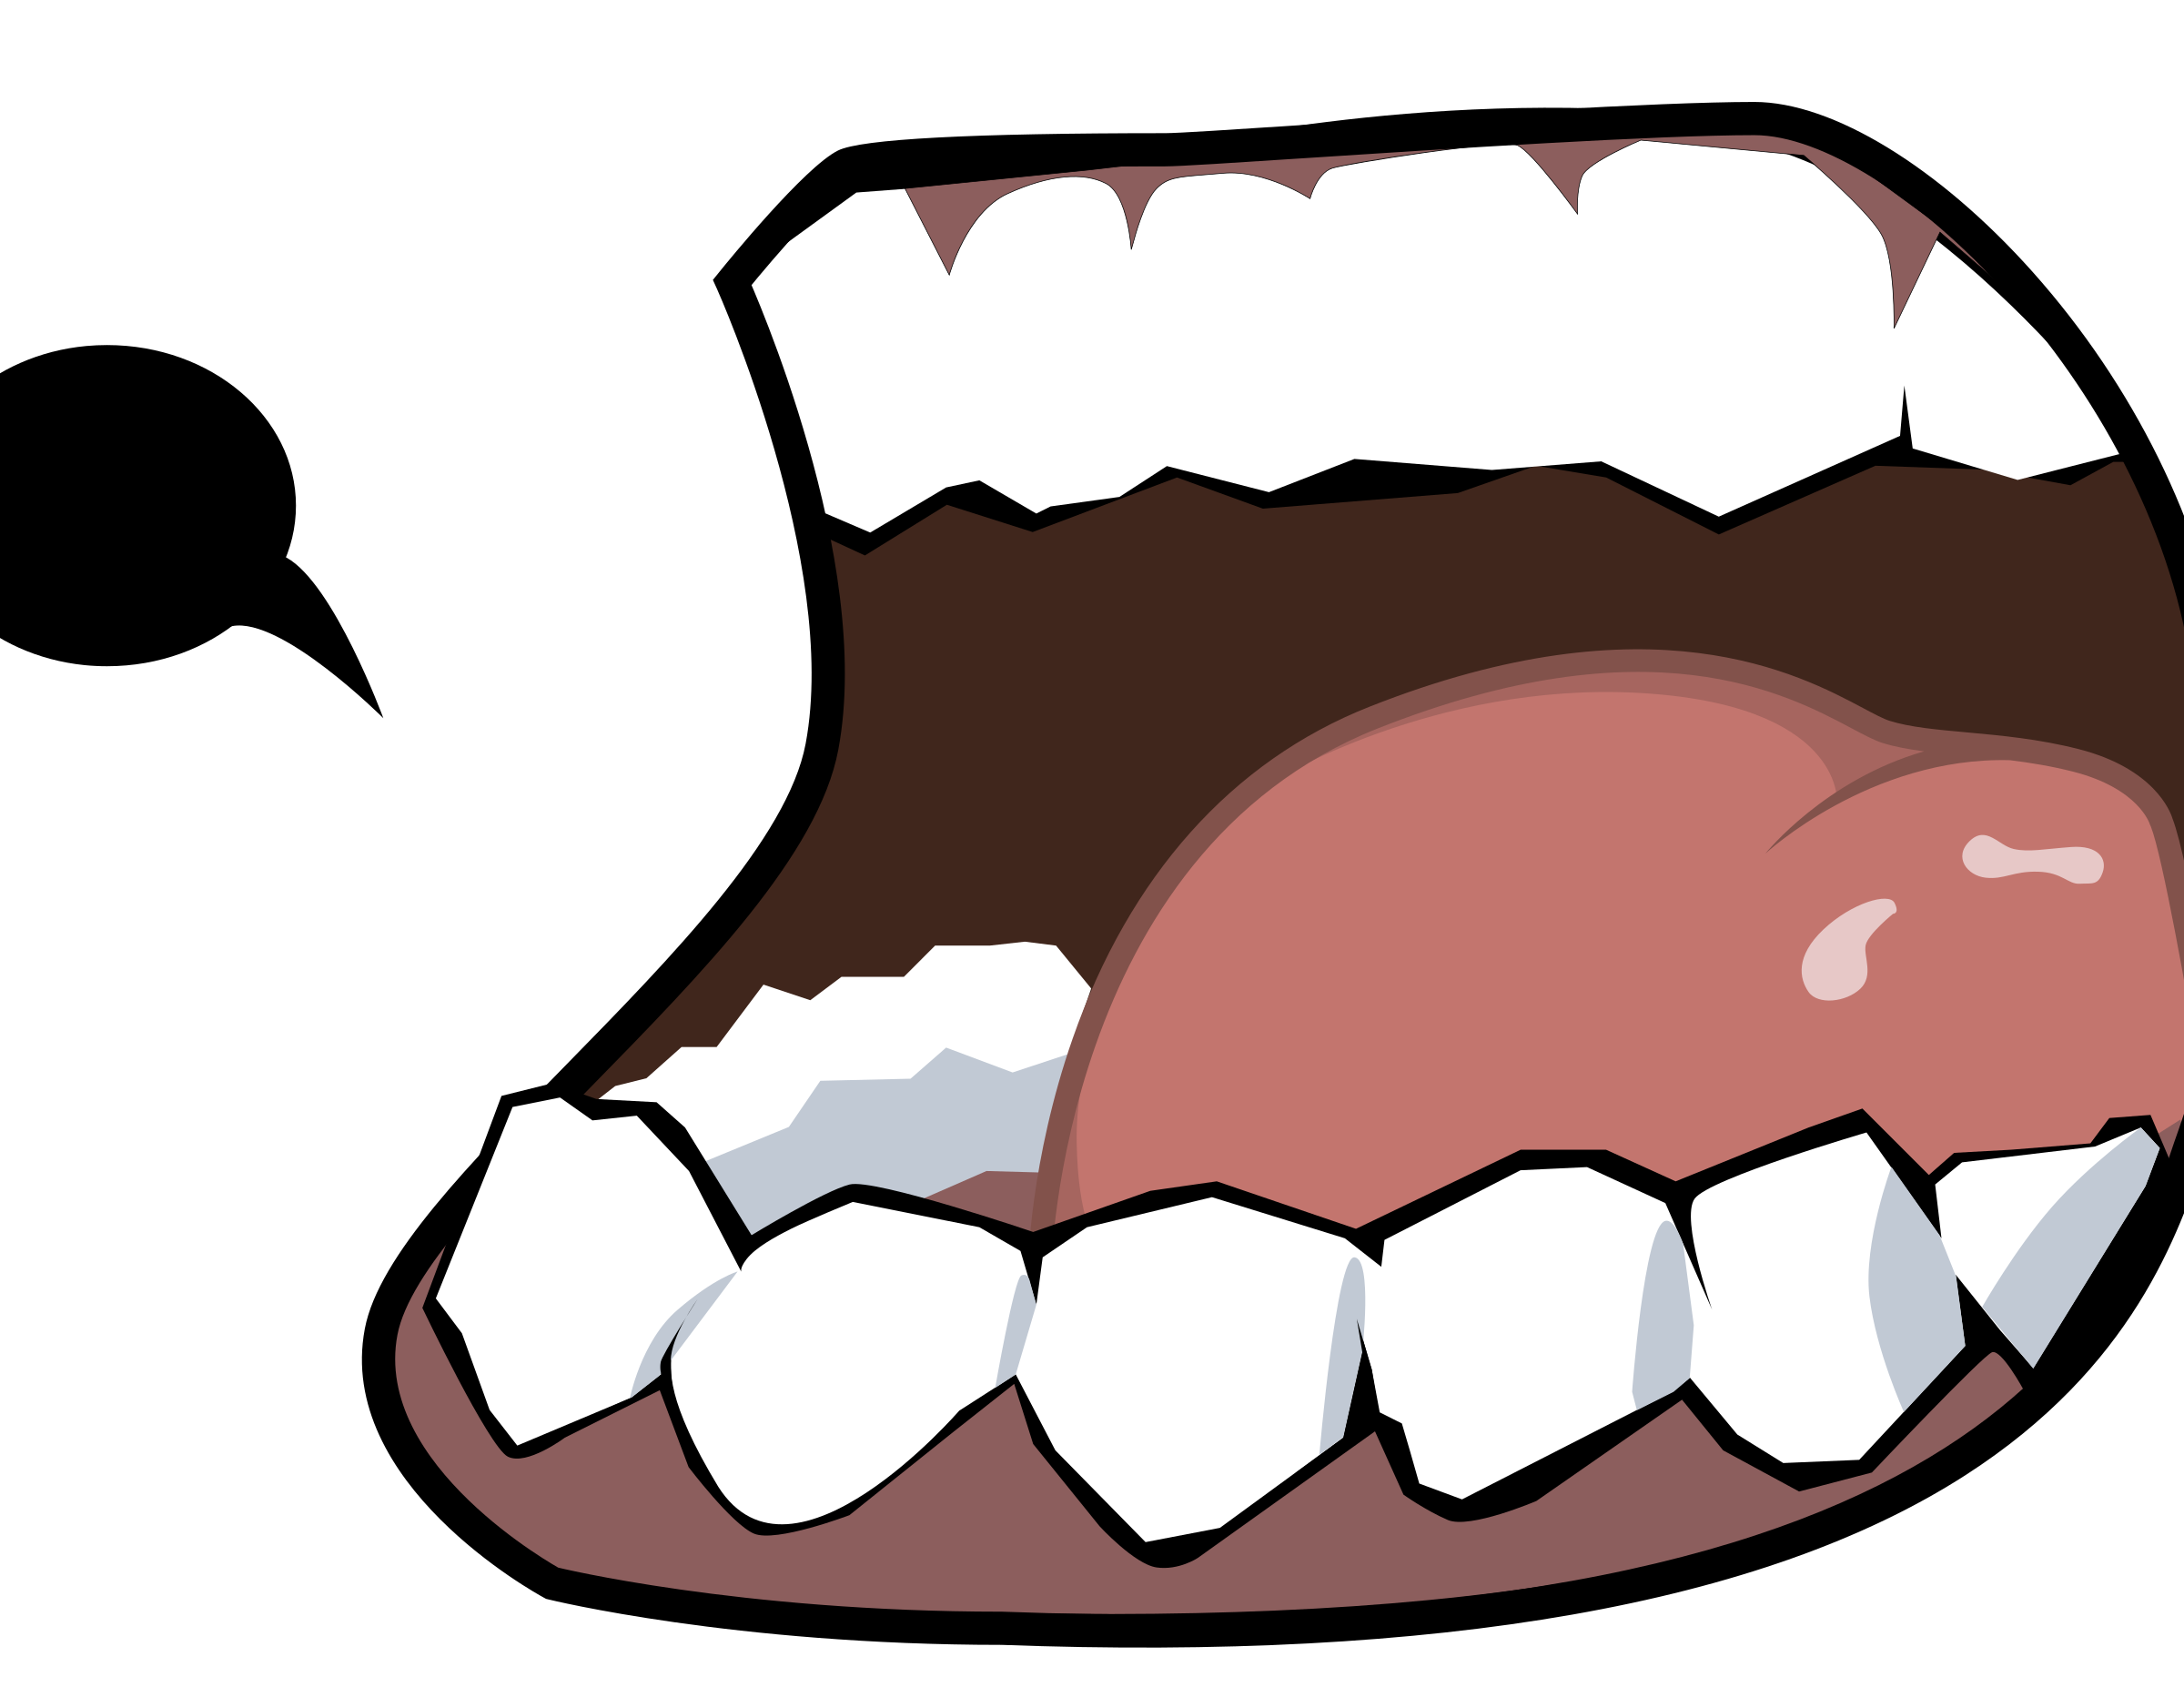 Mouth png clipart. Dark big image